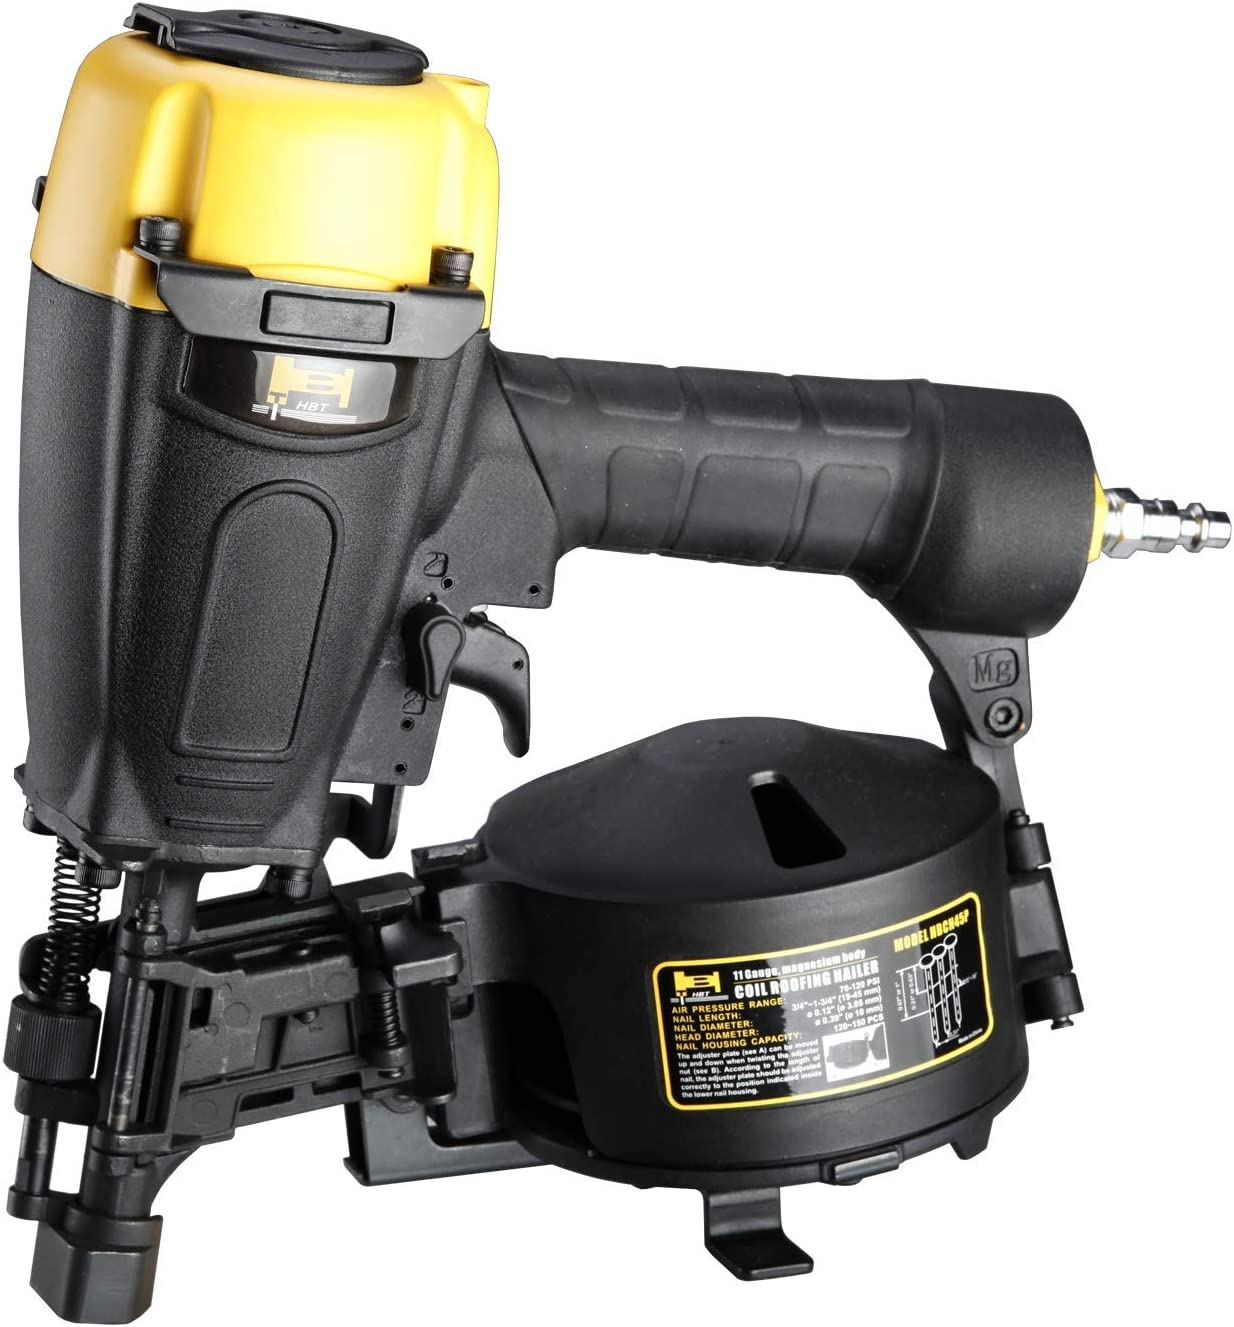 HBT HBCN45P 3 4 to 1-3 4 Coil Roofing Nailer with Magnesium Housing